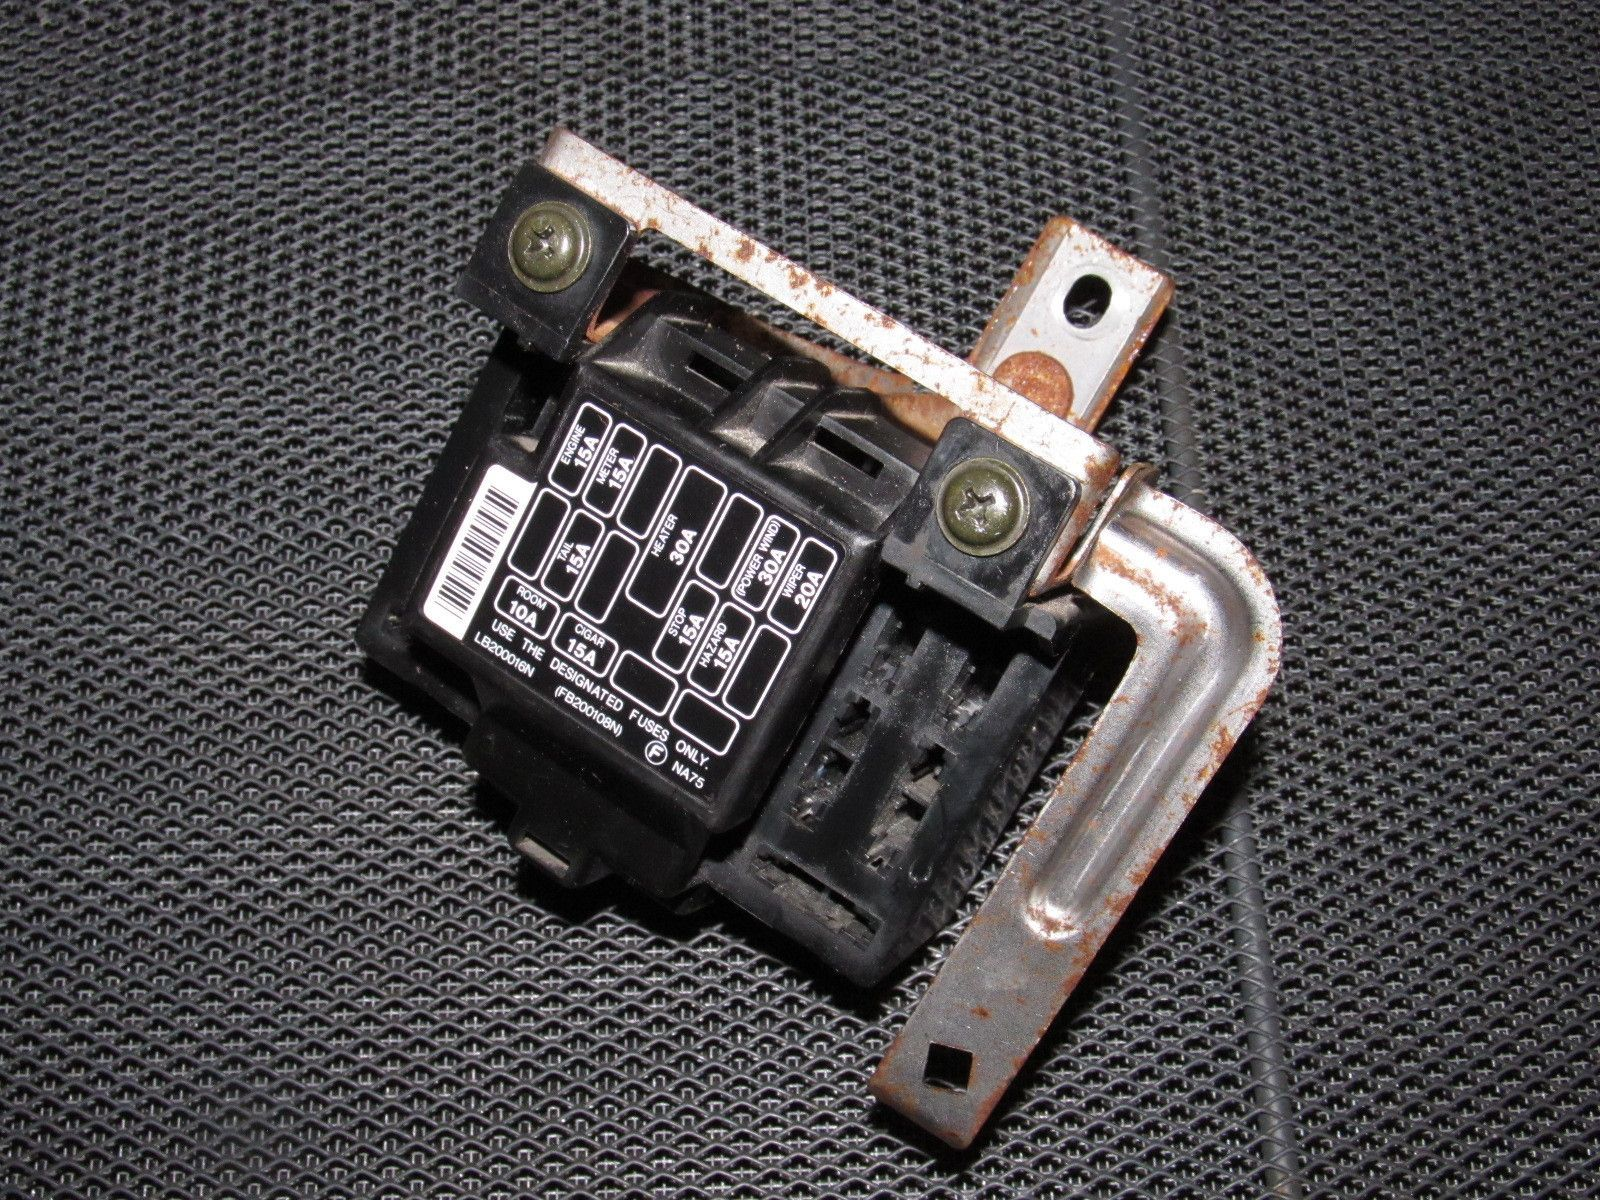 e37911f794d43431036d3126d67fdb46 automobile fuse auto blade fuse,automobile fuse ,special for fuse box location 1988 rx7 convertible at mifinder.co